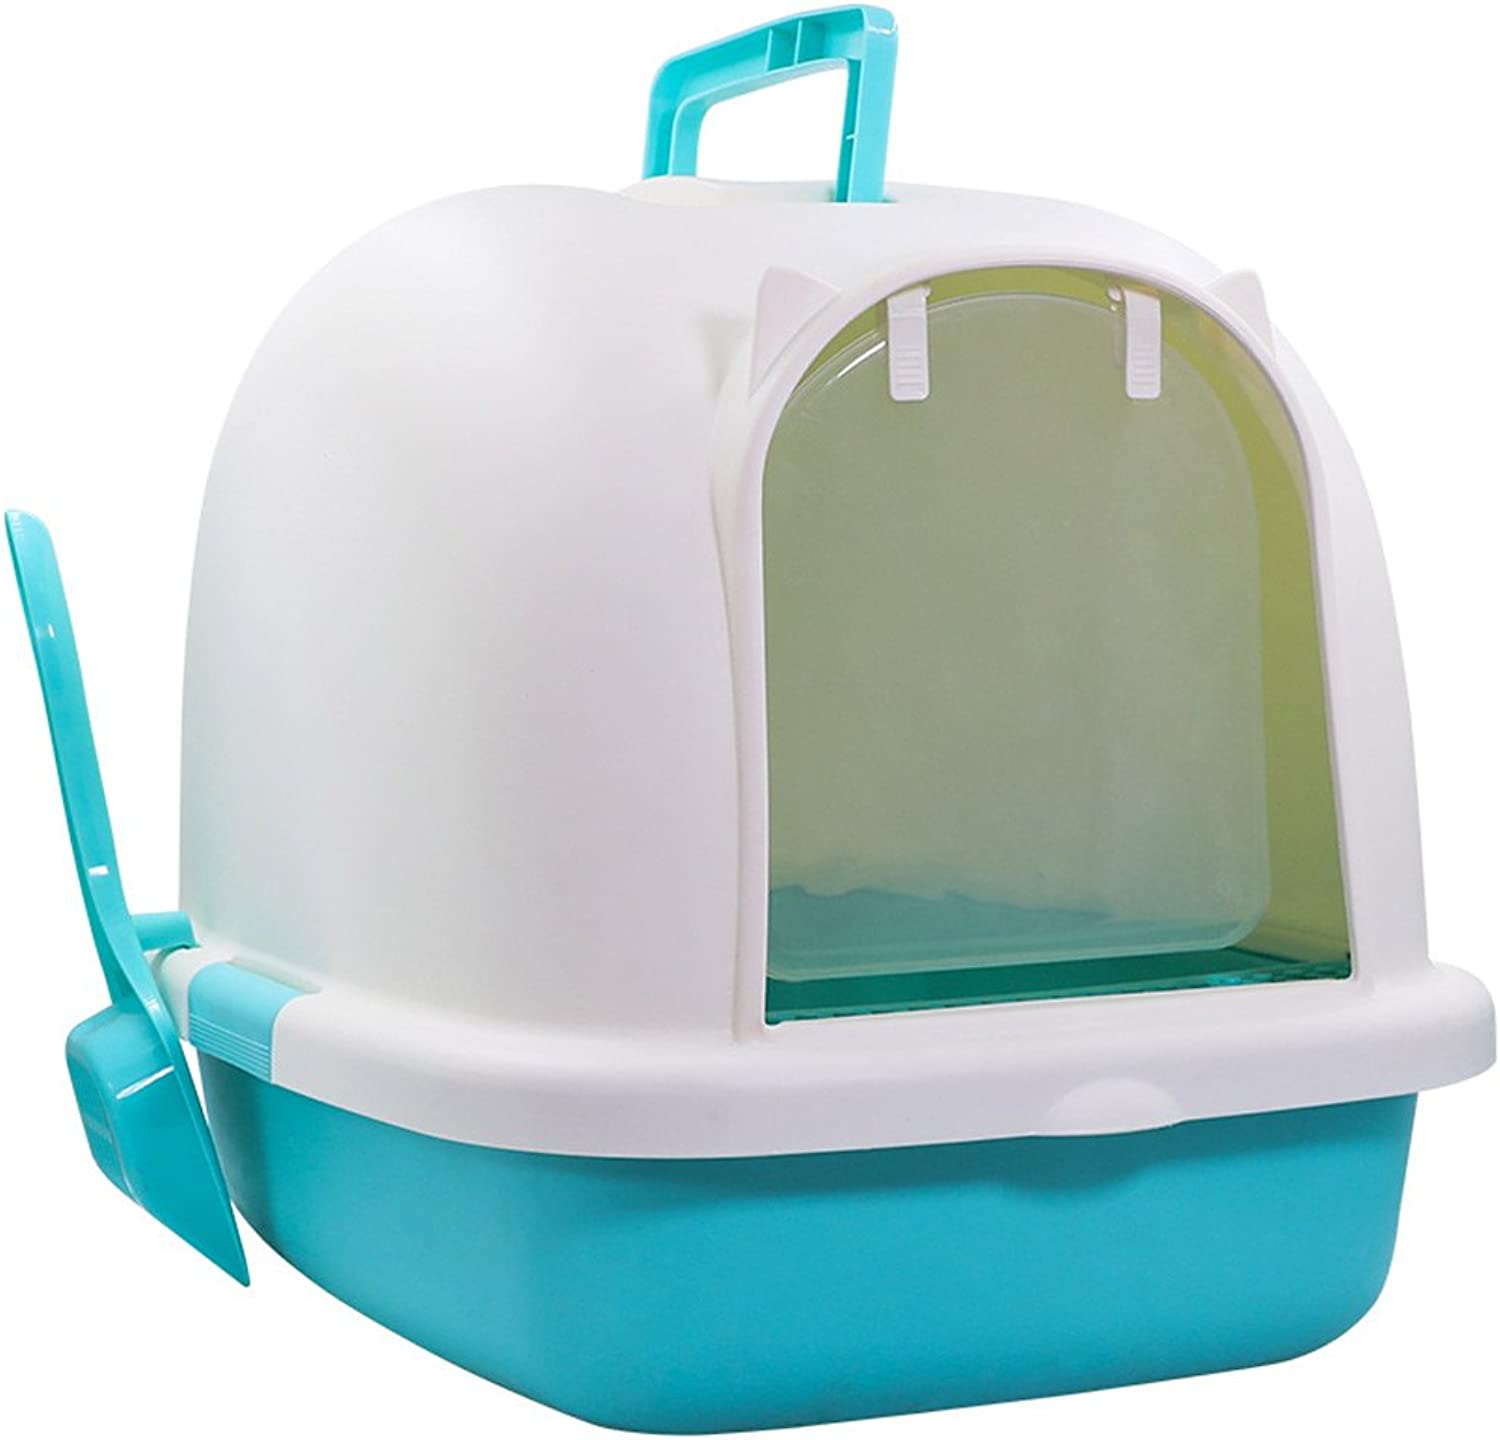 HTZ Cat Litter Box Fully Enclosed Deodorized Large Cat Sandbox Bedpan Antisplash Odorless Cat Toilet Cat Supplies 503839cm Pet Toilet A+ (color   blueE)